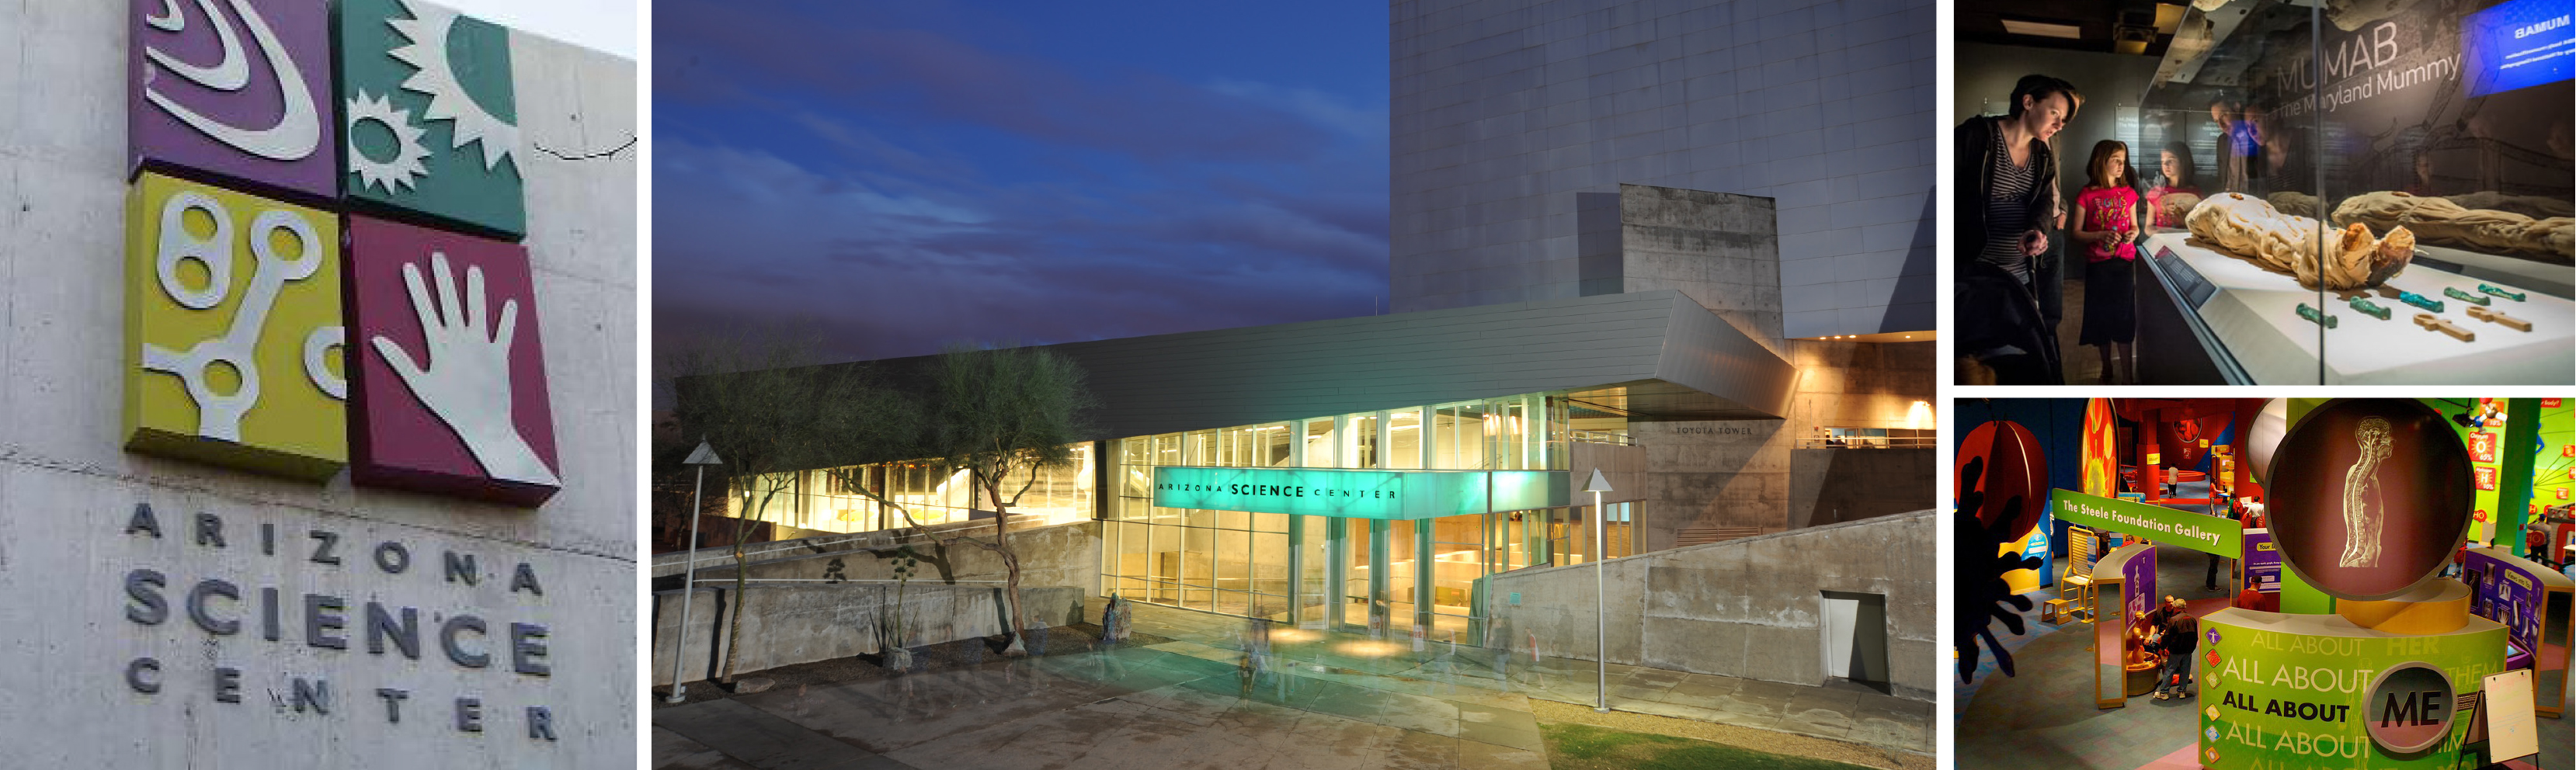 Arizona Science Center is one of the best!